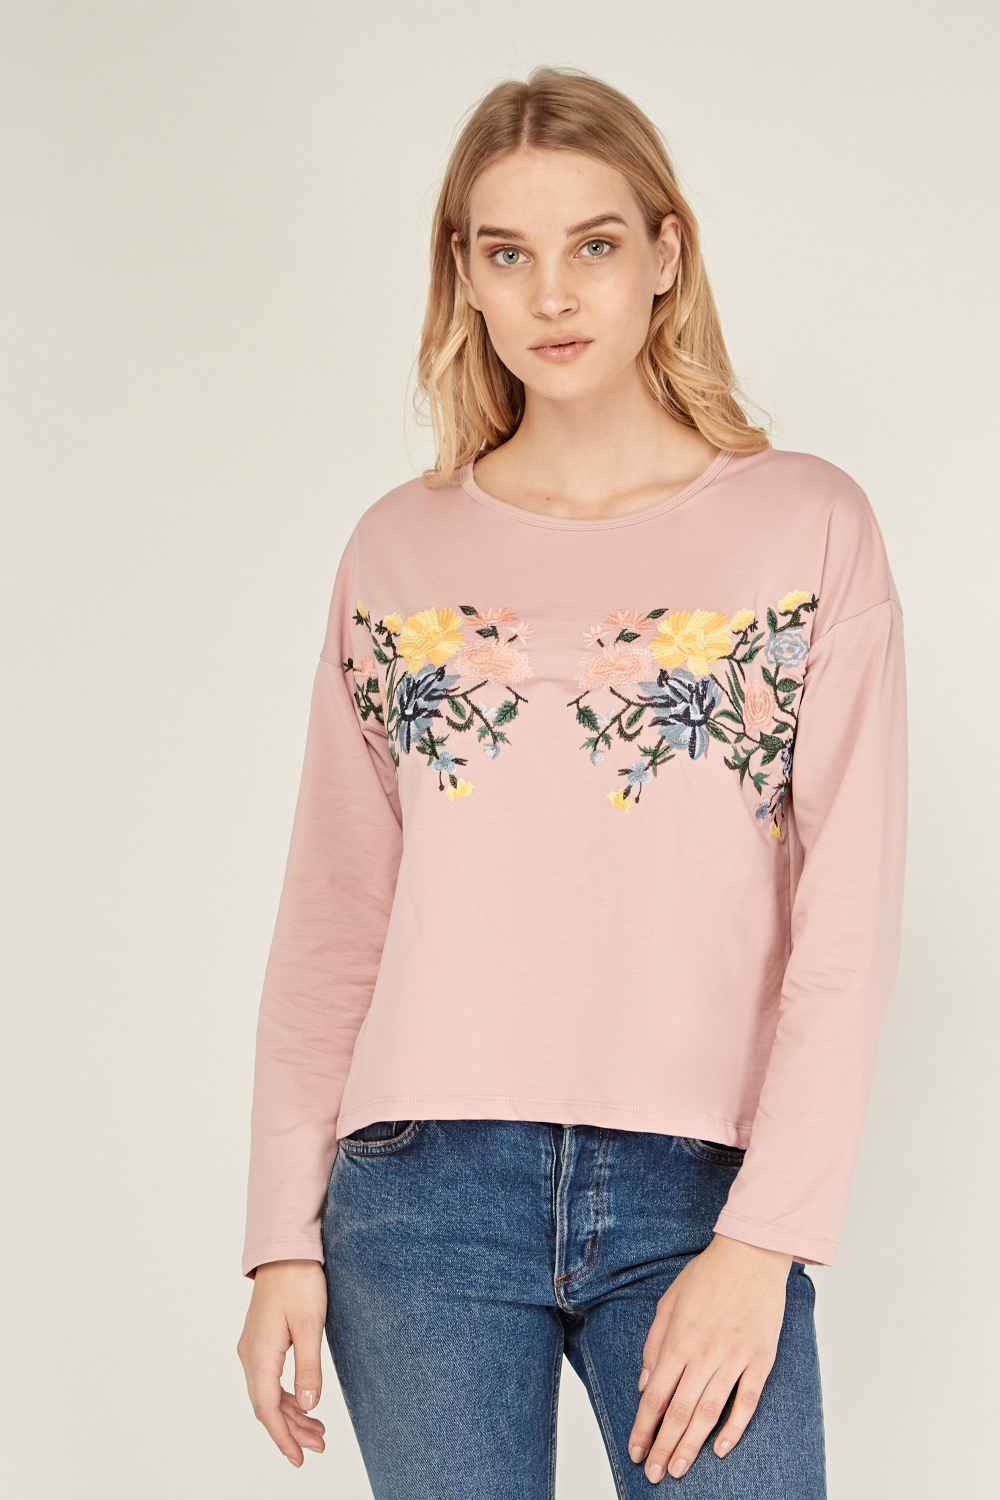 2a91b5c45f5506 Flower Embroidered Basic Top - 3 Colours - Just £5